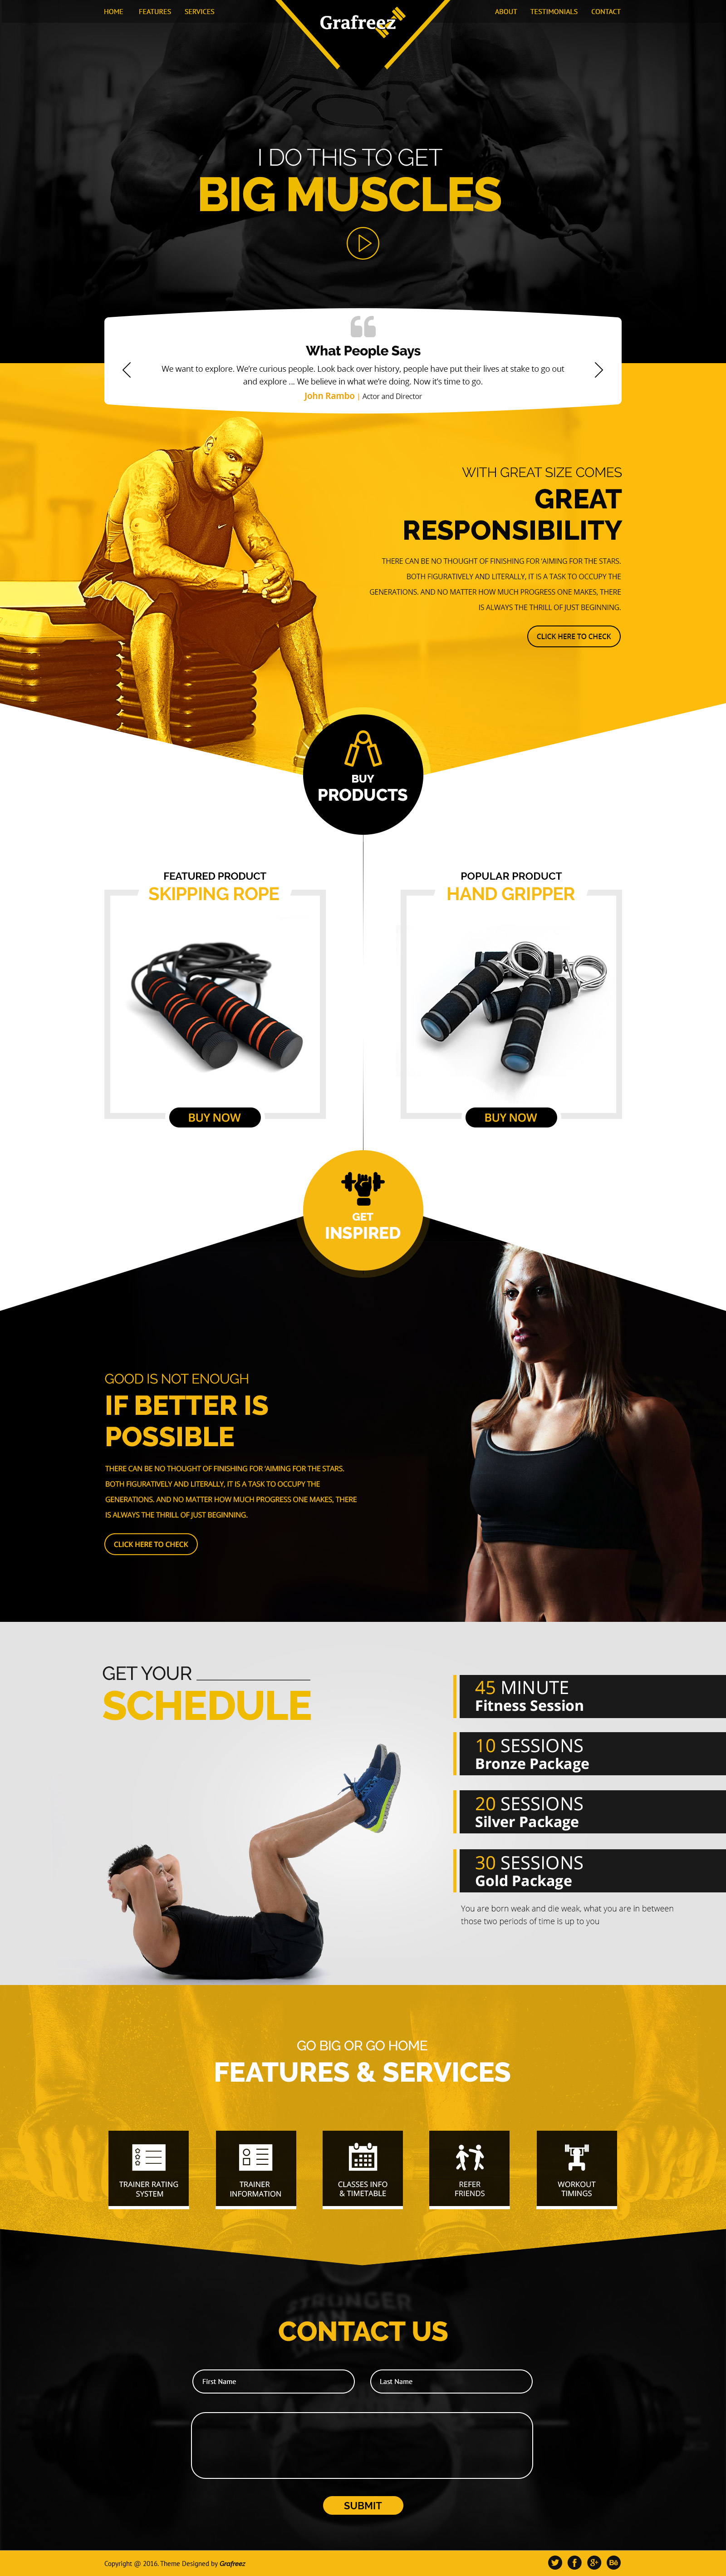 power is a free gym psd template based on 12 column bootstrap grid